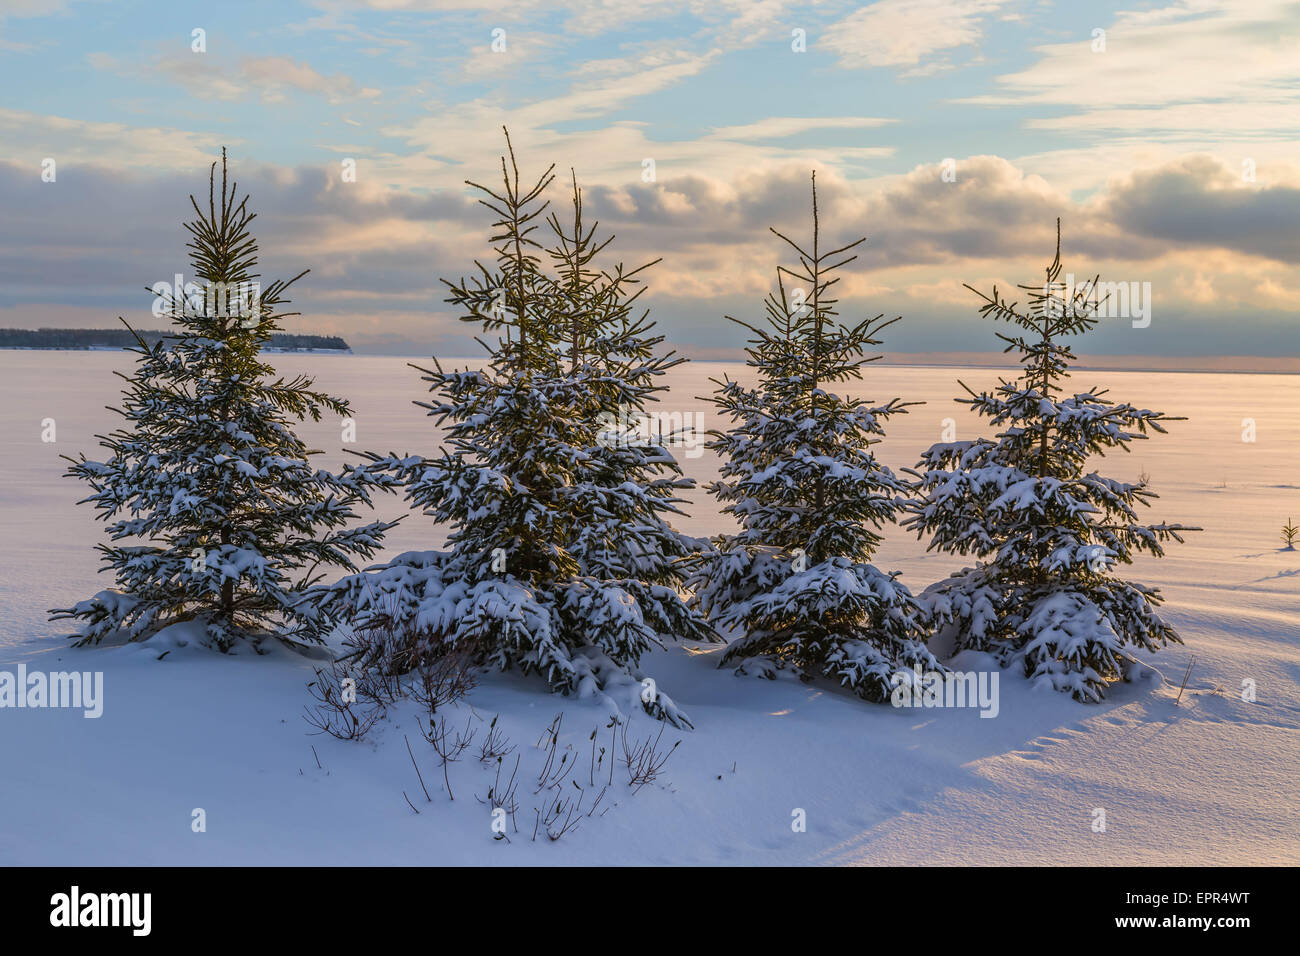 Winter spruce trees at dusk. - Stock Image